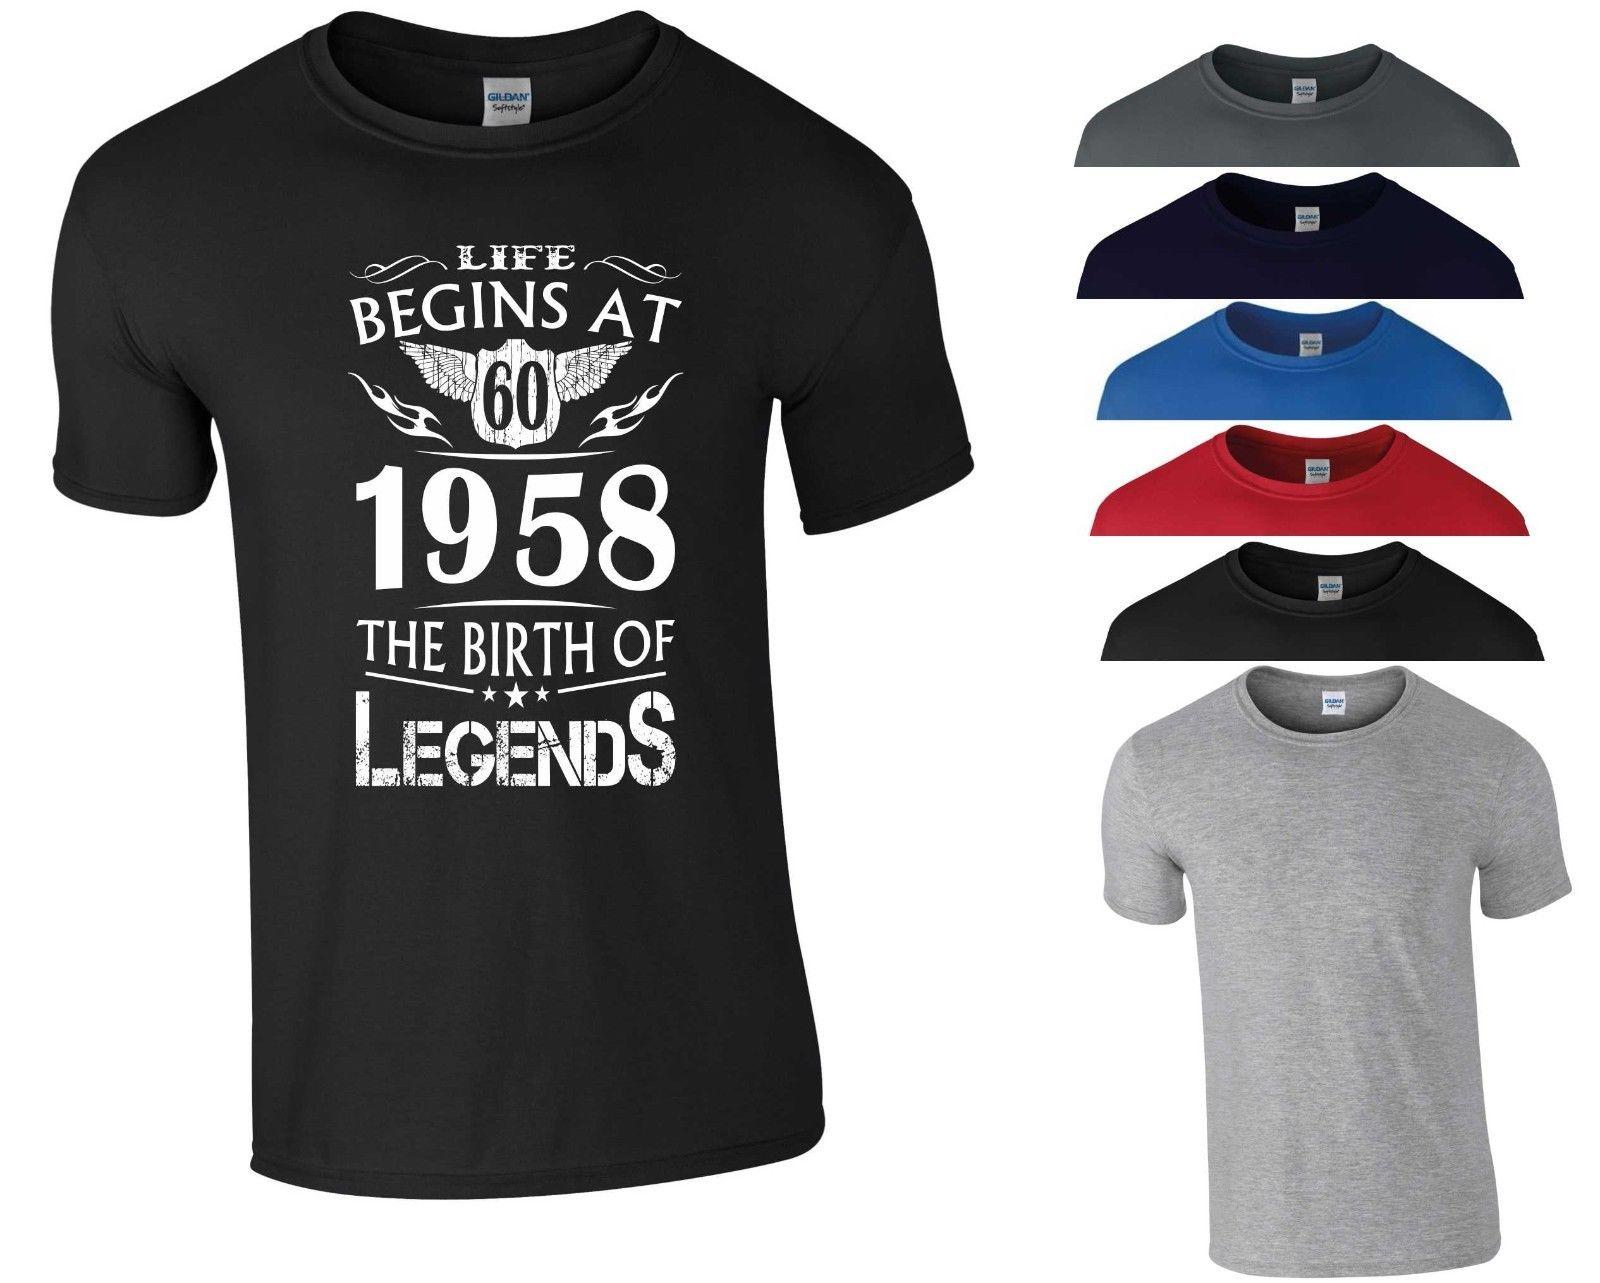 d83a9c3f5 Life Begins At 60 T Shirt Birth Of Legends Sixty 60 Birthday Gift Men Tee  Top 2018 Funny Tee Cute T Shirts Man 100% Cotton Cool Tees Design T Shirt  Of The ...